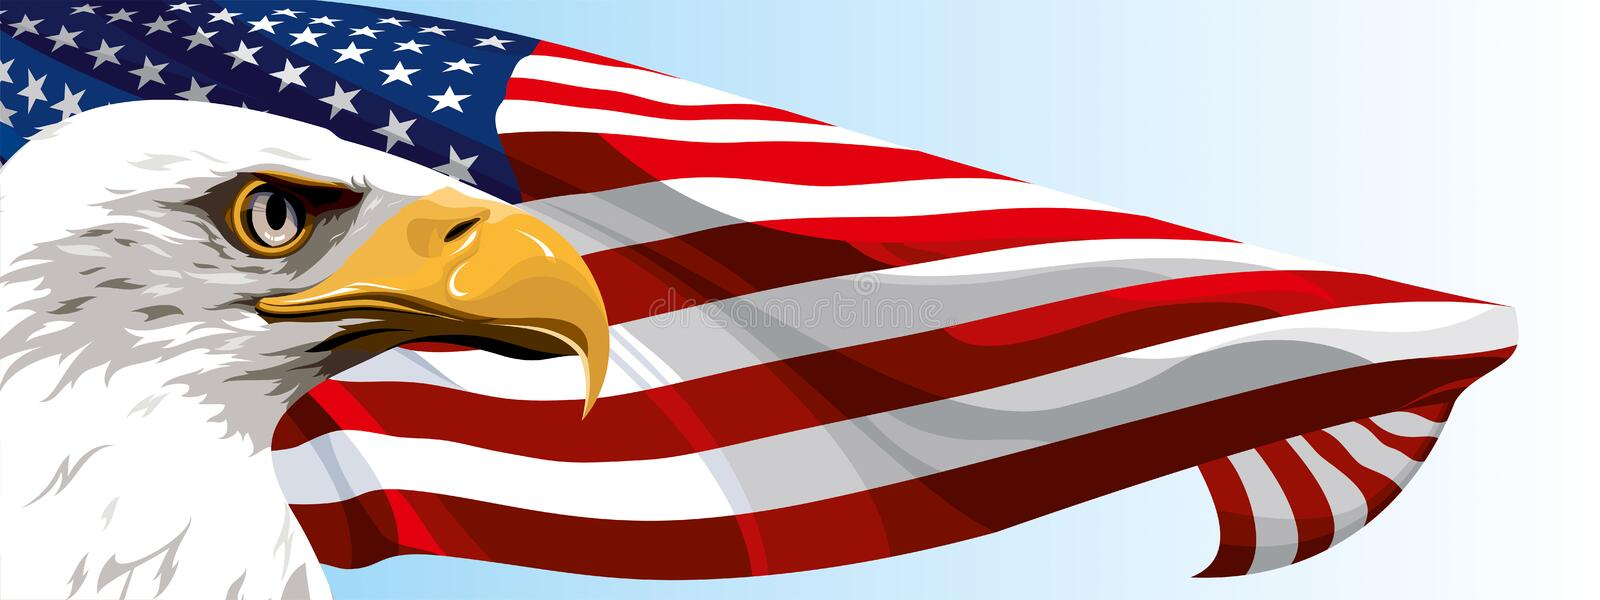 The National Symbol Of The Usa Stock Vector Illustration Of Banner